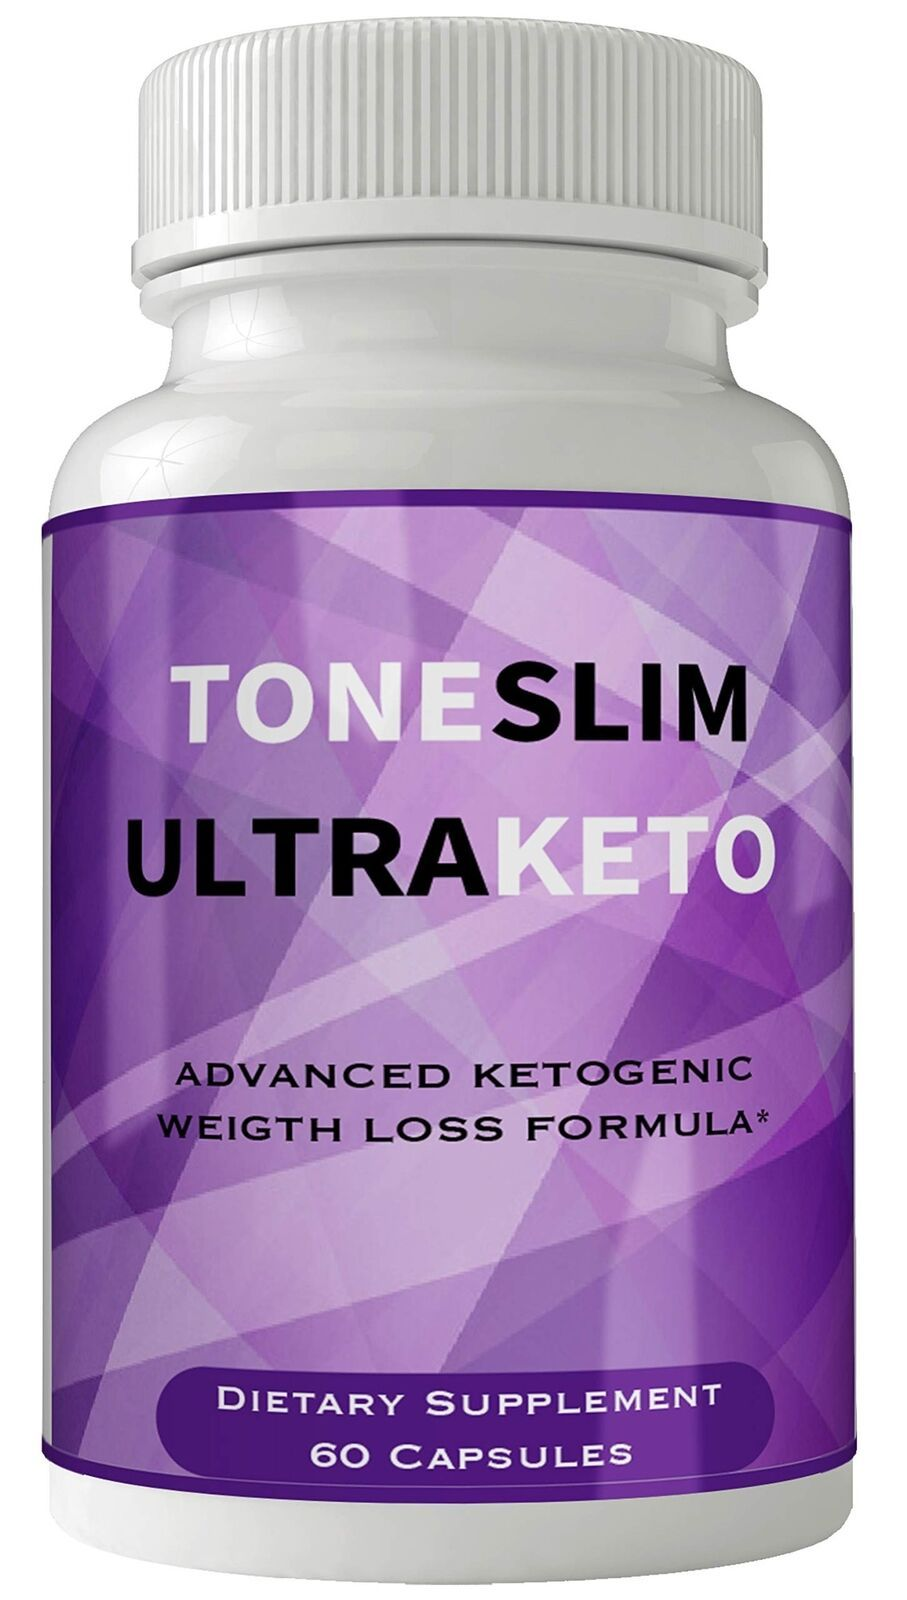 Rapid Tone Slim Weight Loss Pill Keto Formula